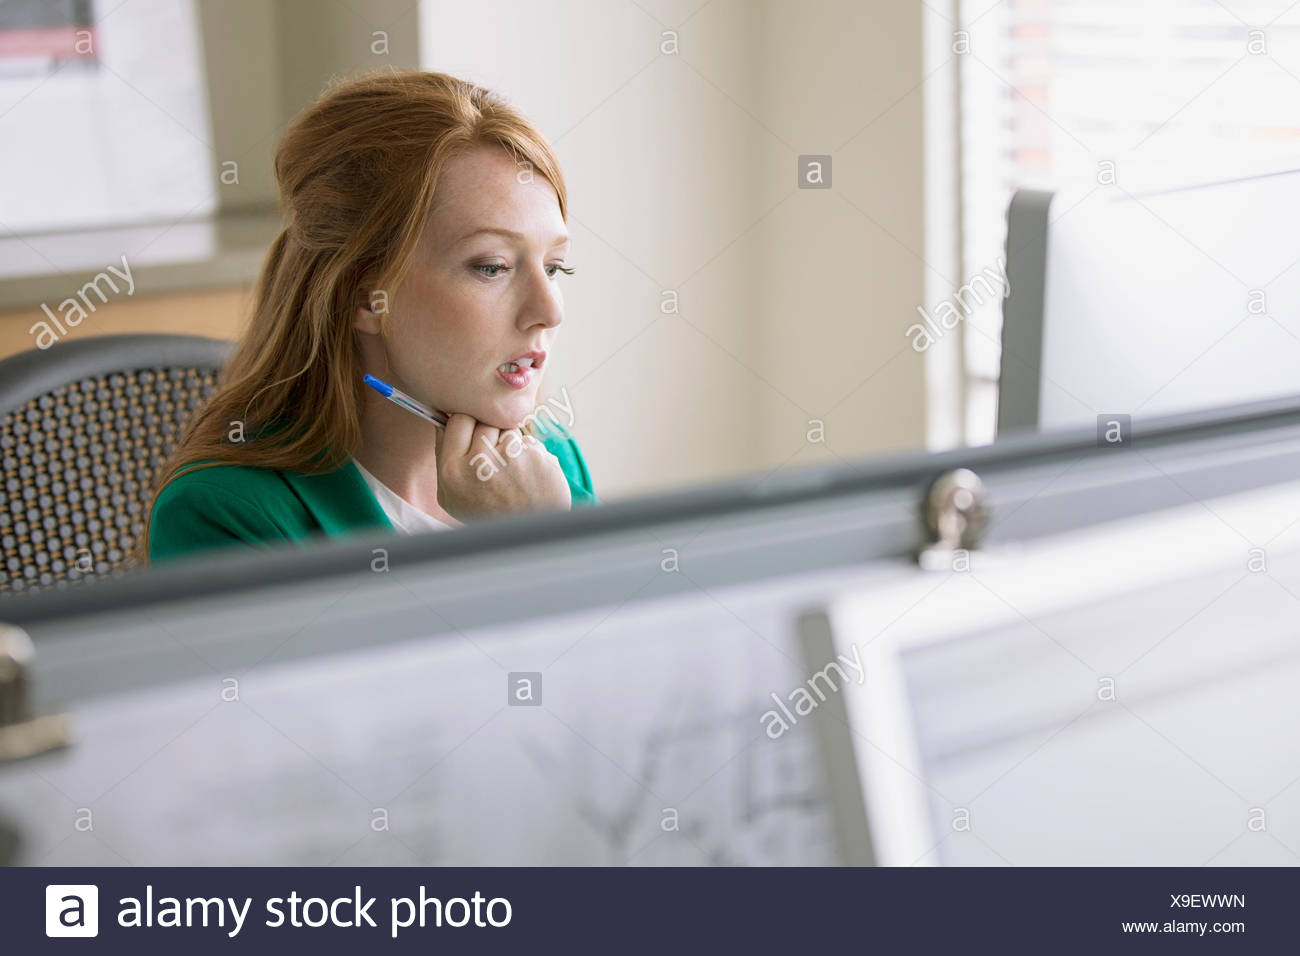 pretty office worker biting her lip - Stock Image